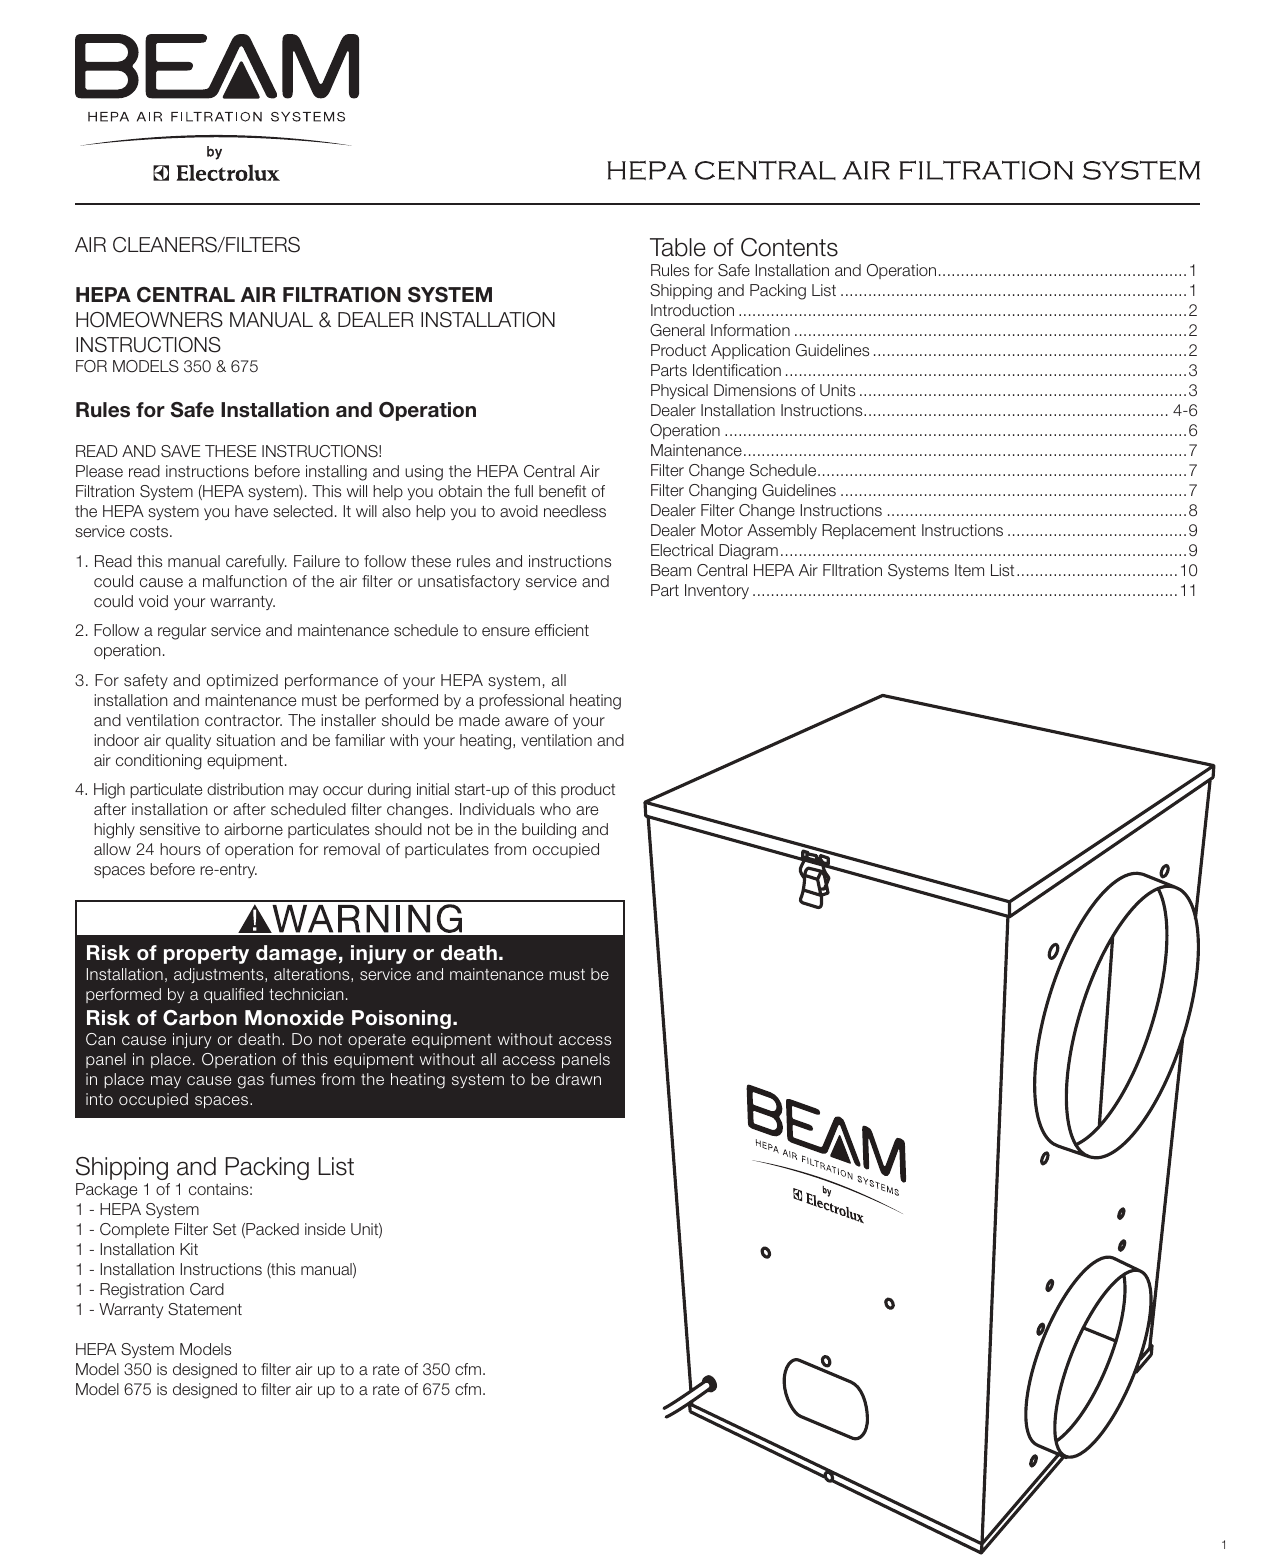 Beam Electrolux Wiring Diagram Schematic Diagrams Vacuum 350 Users Manual Canister Housing